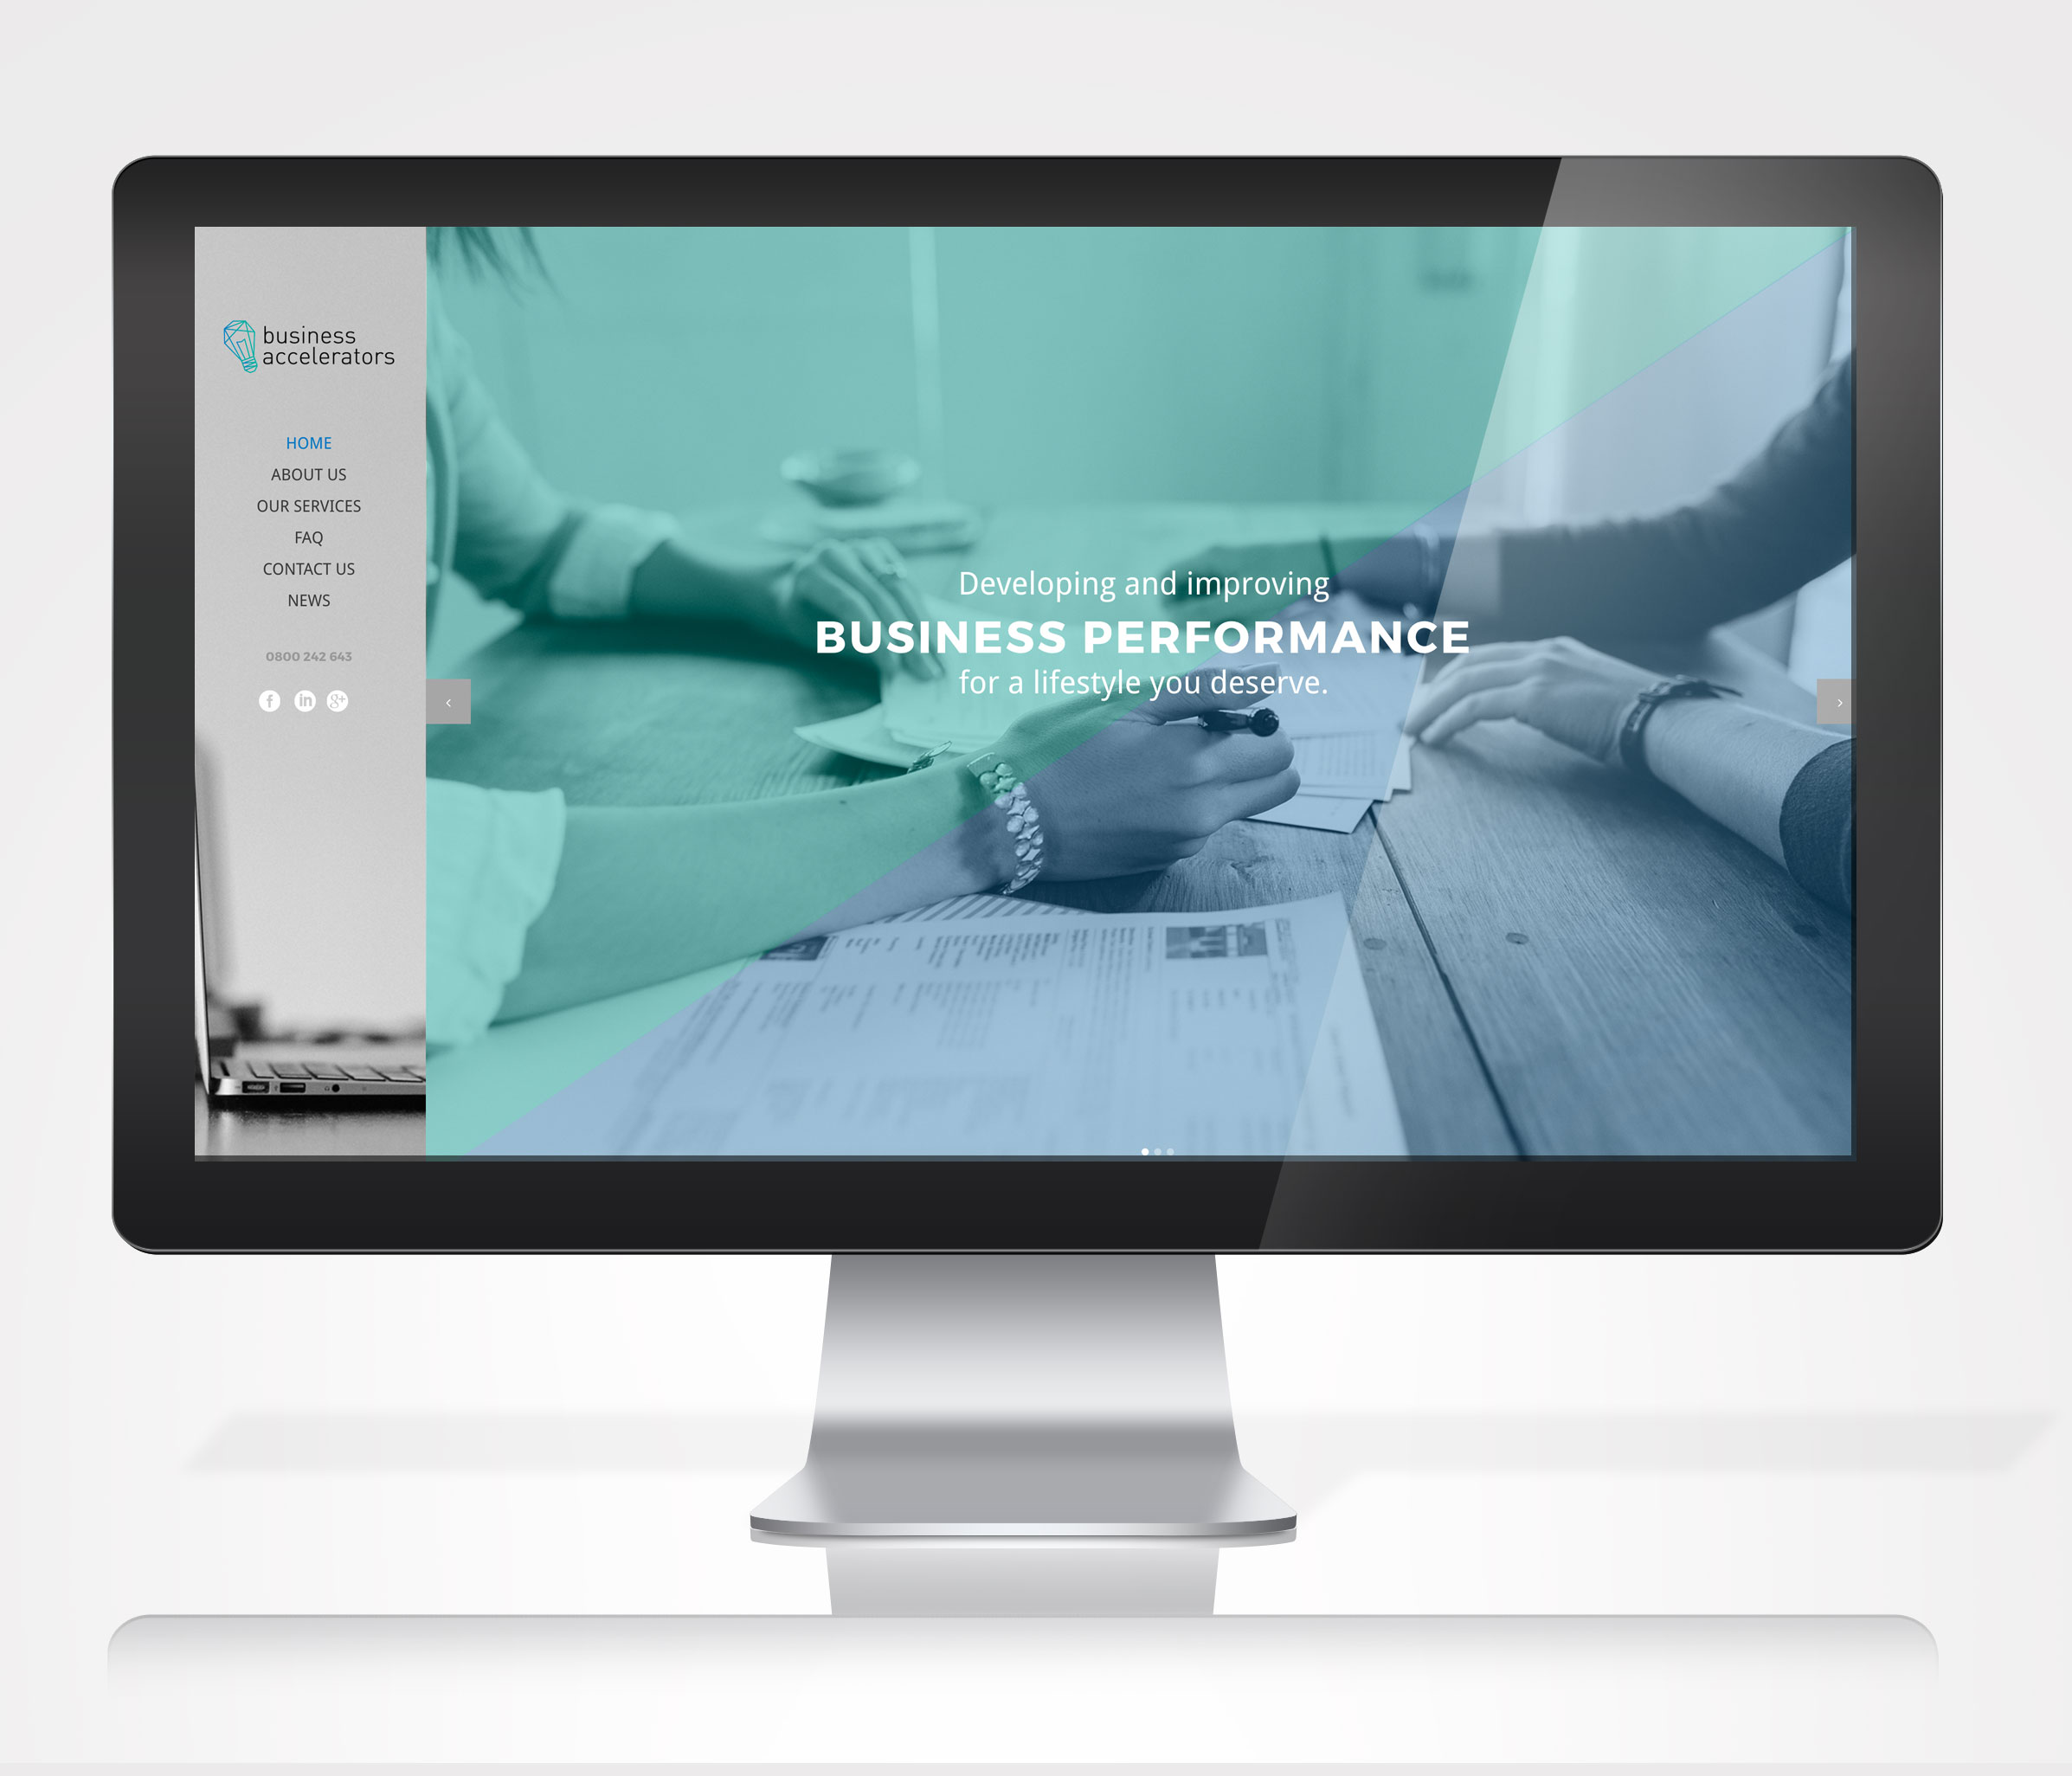 Business Accelerators website design by Oh Gosh